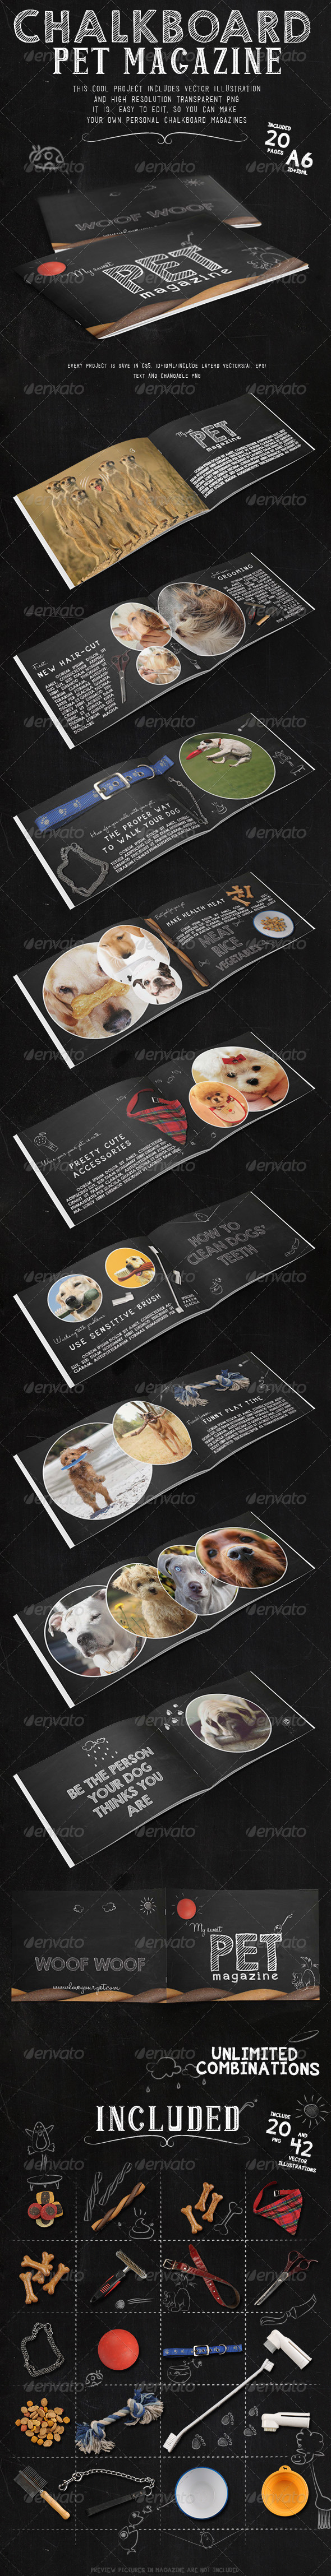 GraphicRiver Chalkboard Pet Magazine 7862727